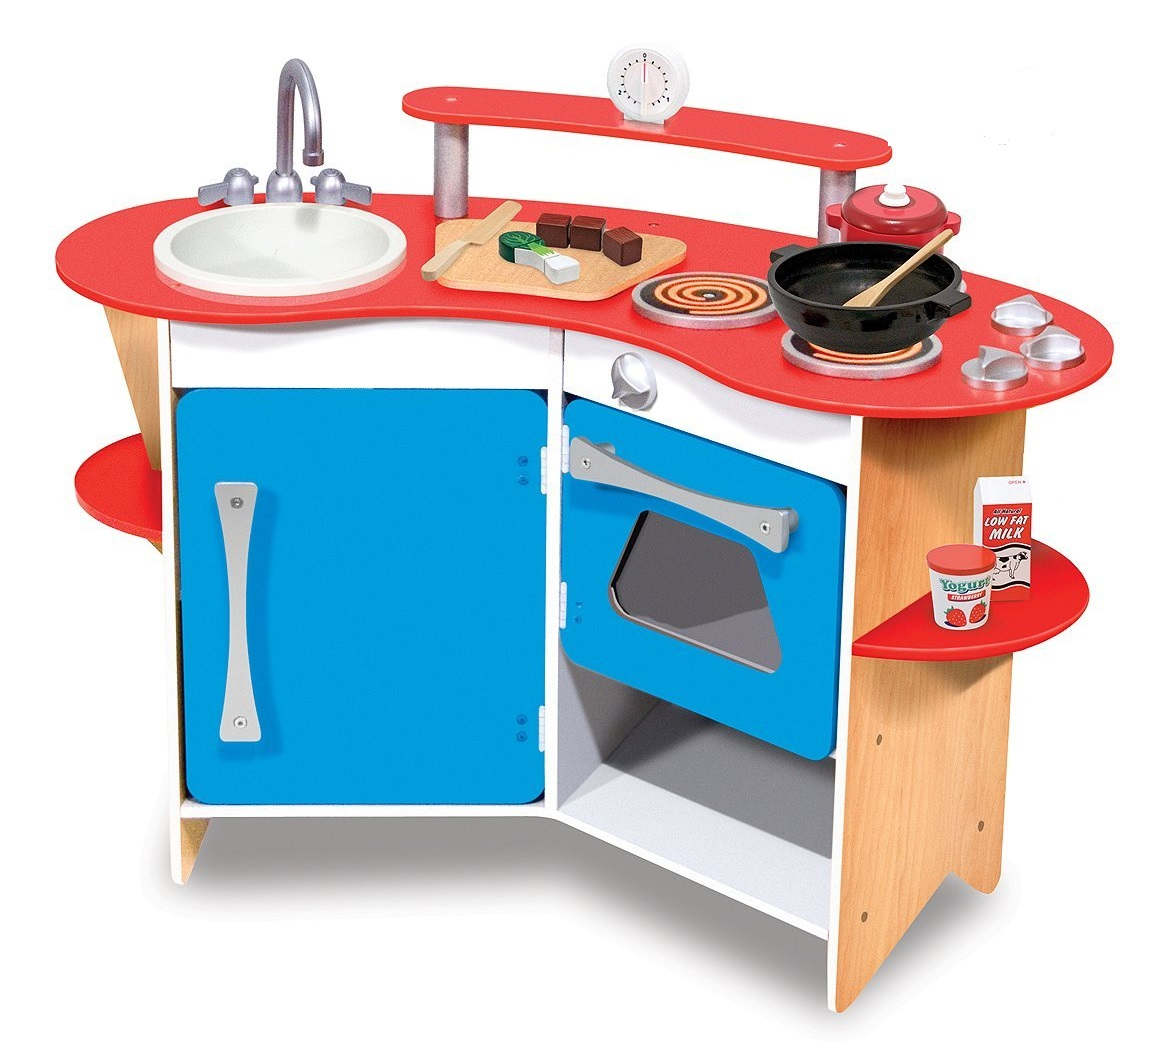 best play kitchen sets - which are the popular ones?